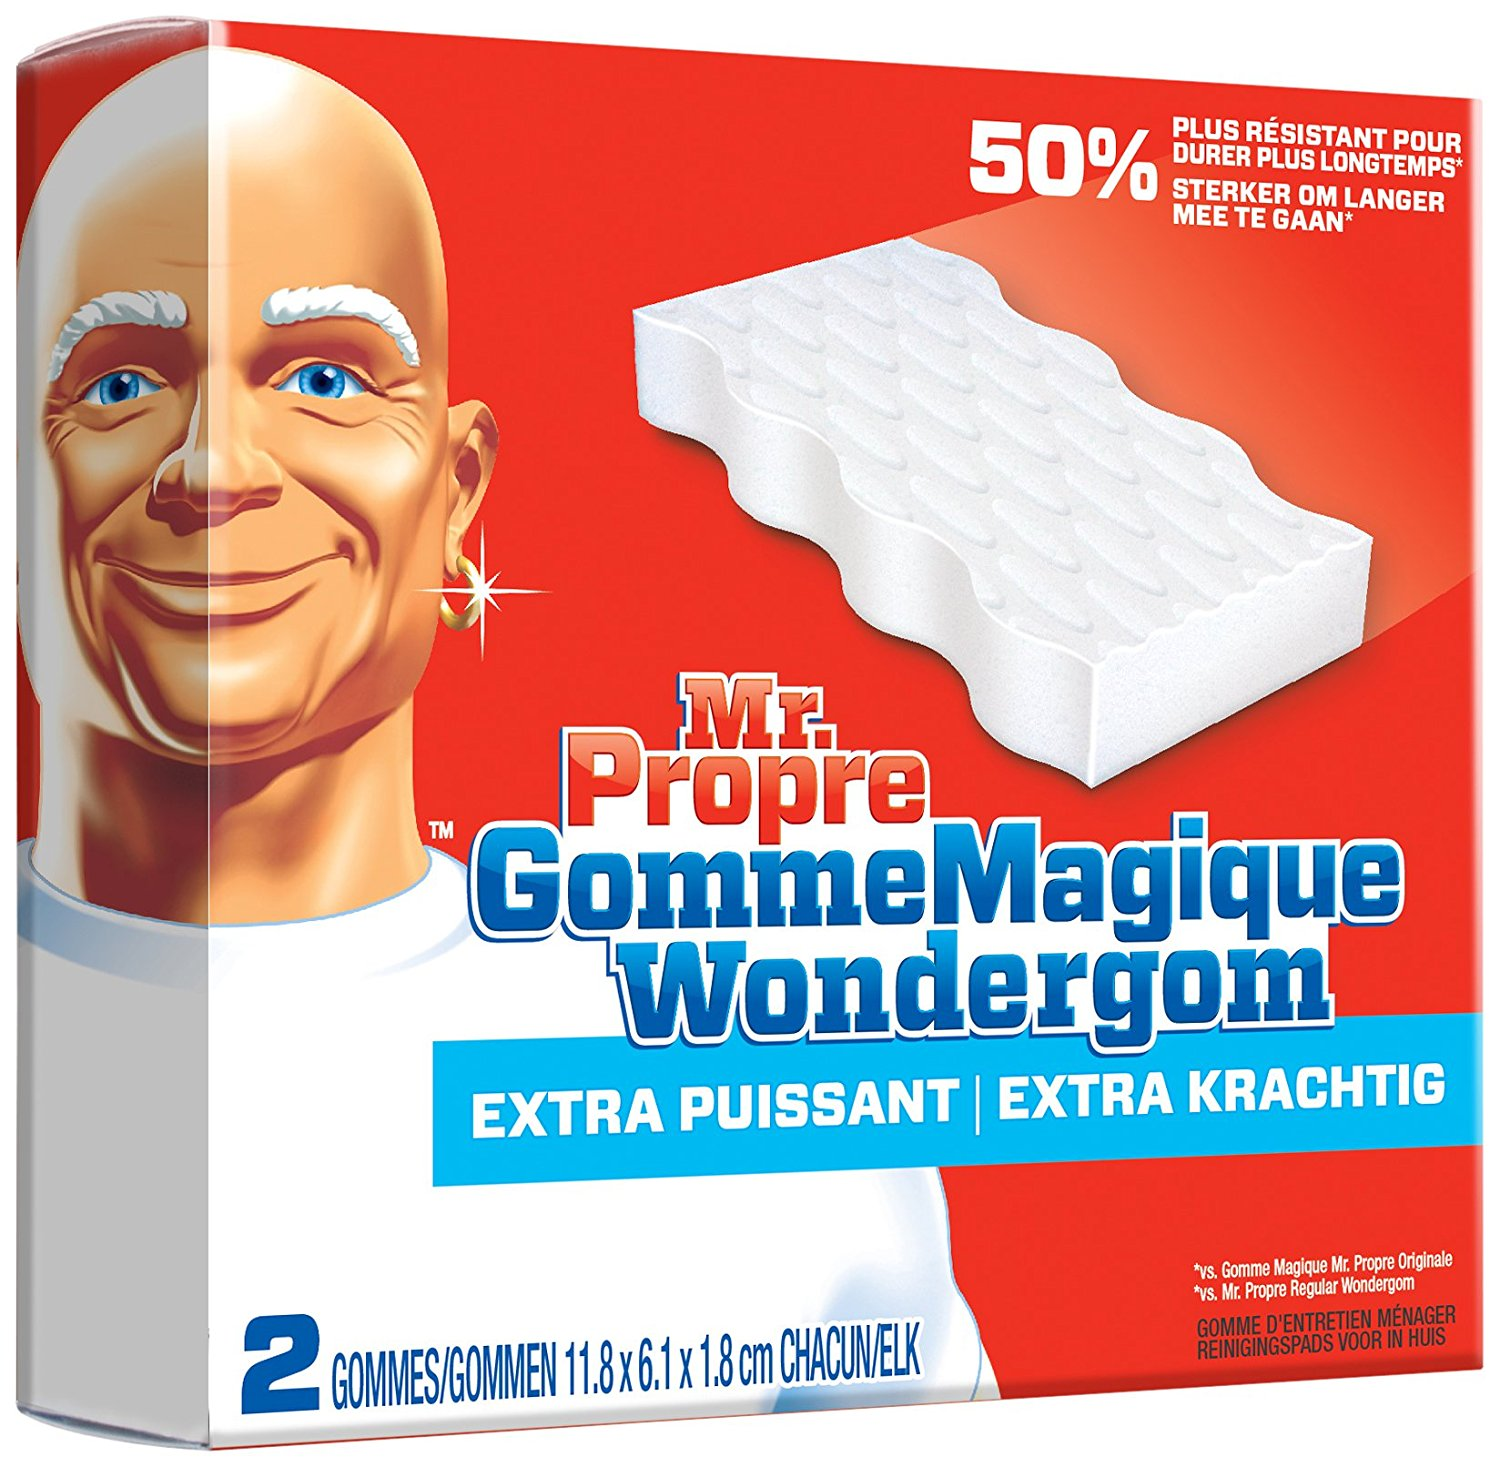 gomme mr propre - Cookeo Mania